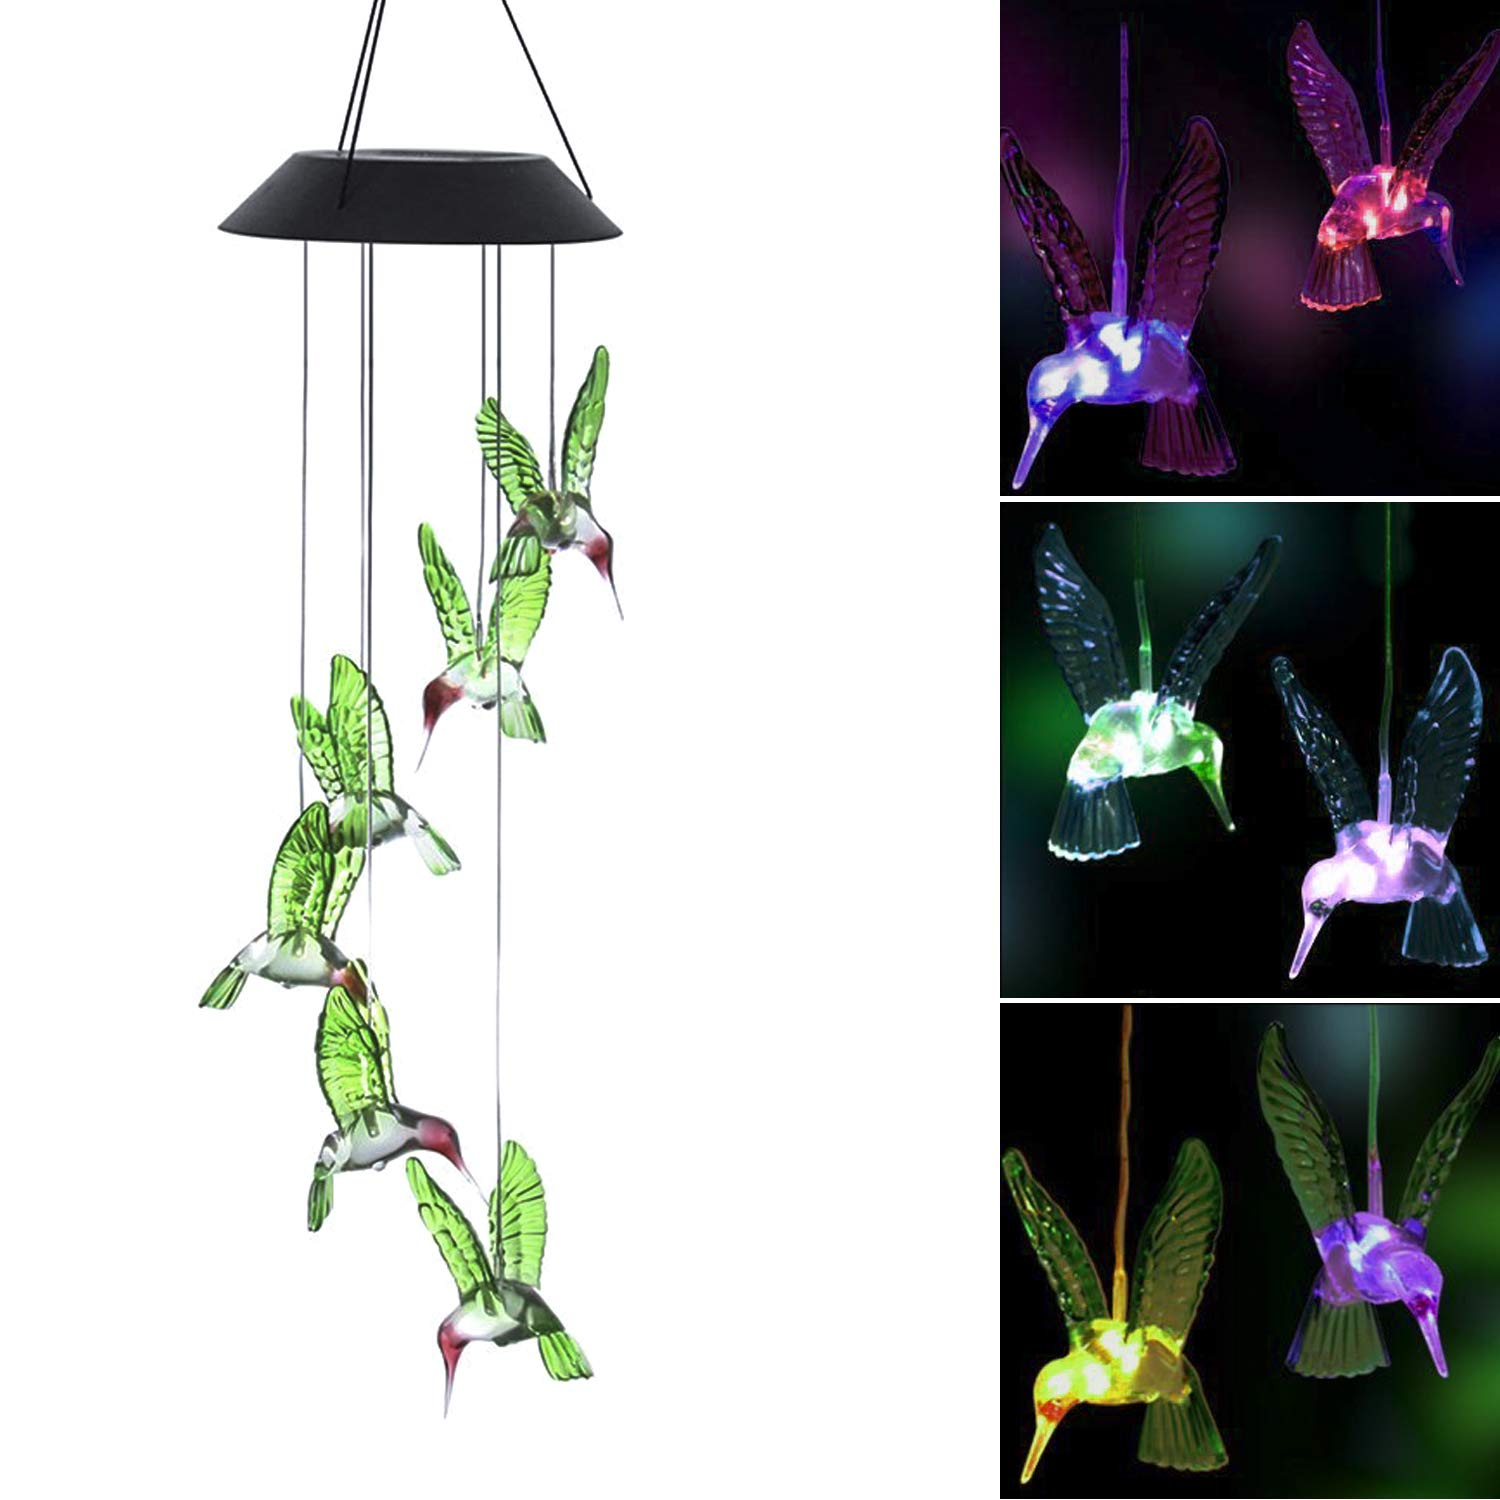 Solar Powered Wind Chimes,Suniness LED Solar Mobile Wind Chime,Color-Changing Waterproof LED Hanging Lamp Wind Chime for Outdoor Indoor Gardening Lighting Decoration Home (Hummingbird)